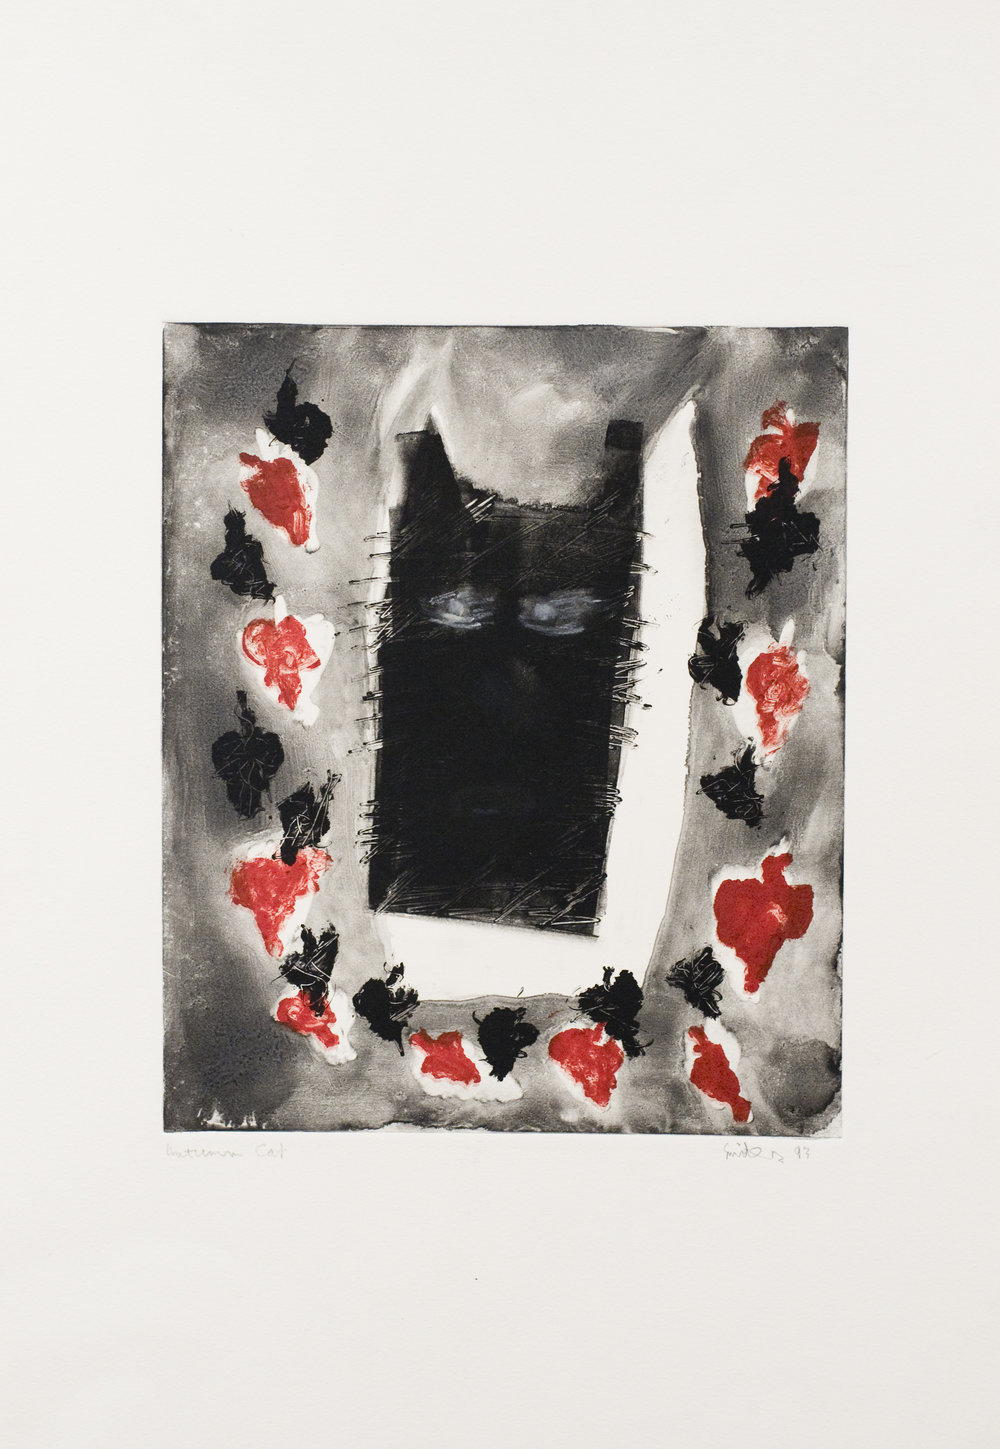 Jenny Snider,  Autumn Cat,  1993, monoprint, 22h x 15w in.